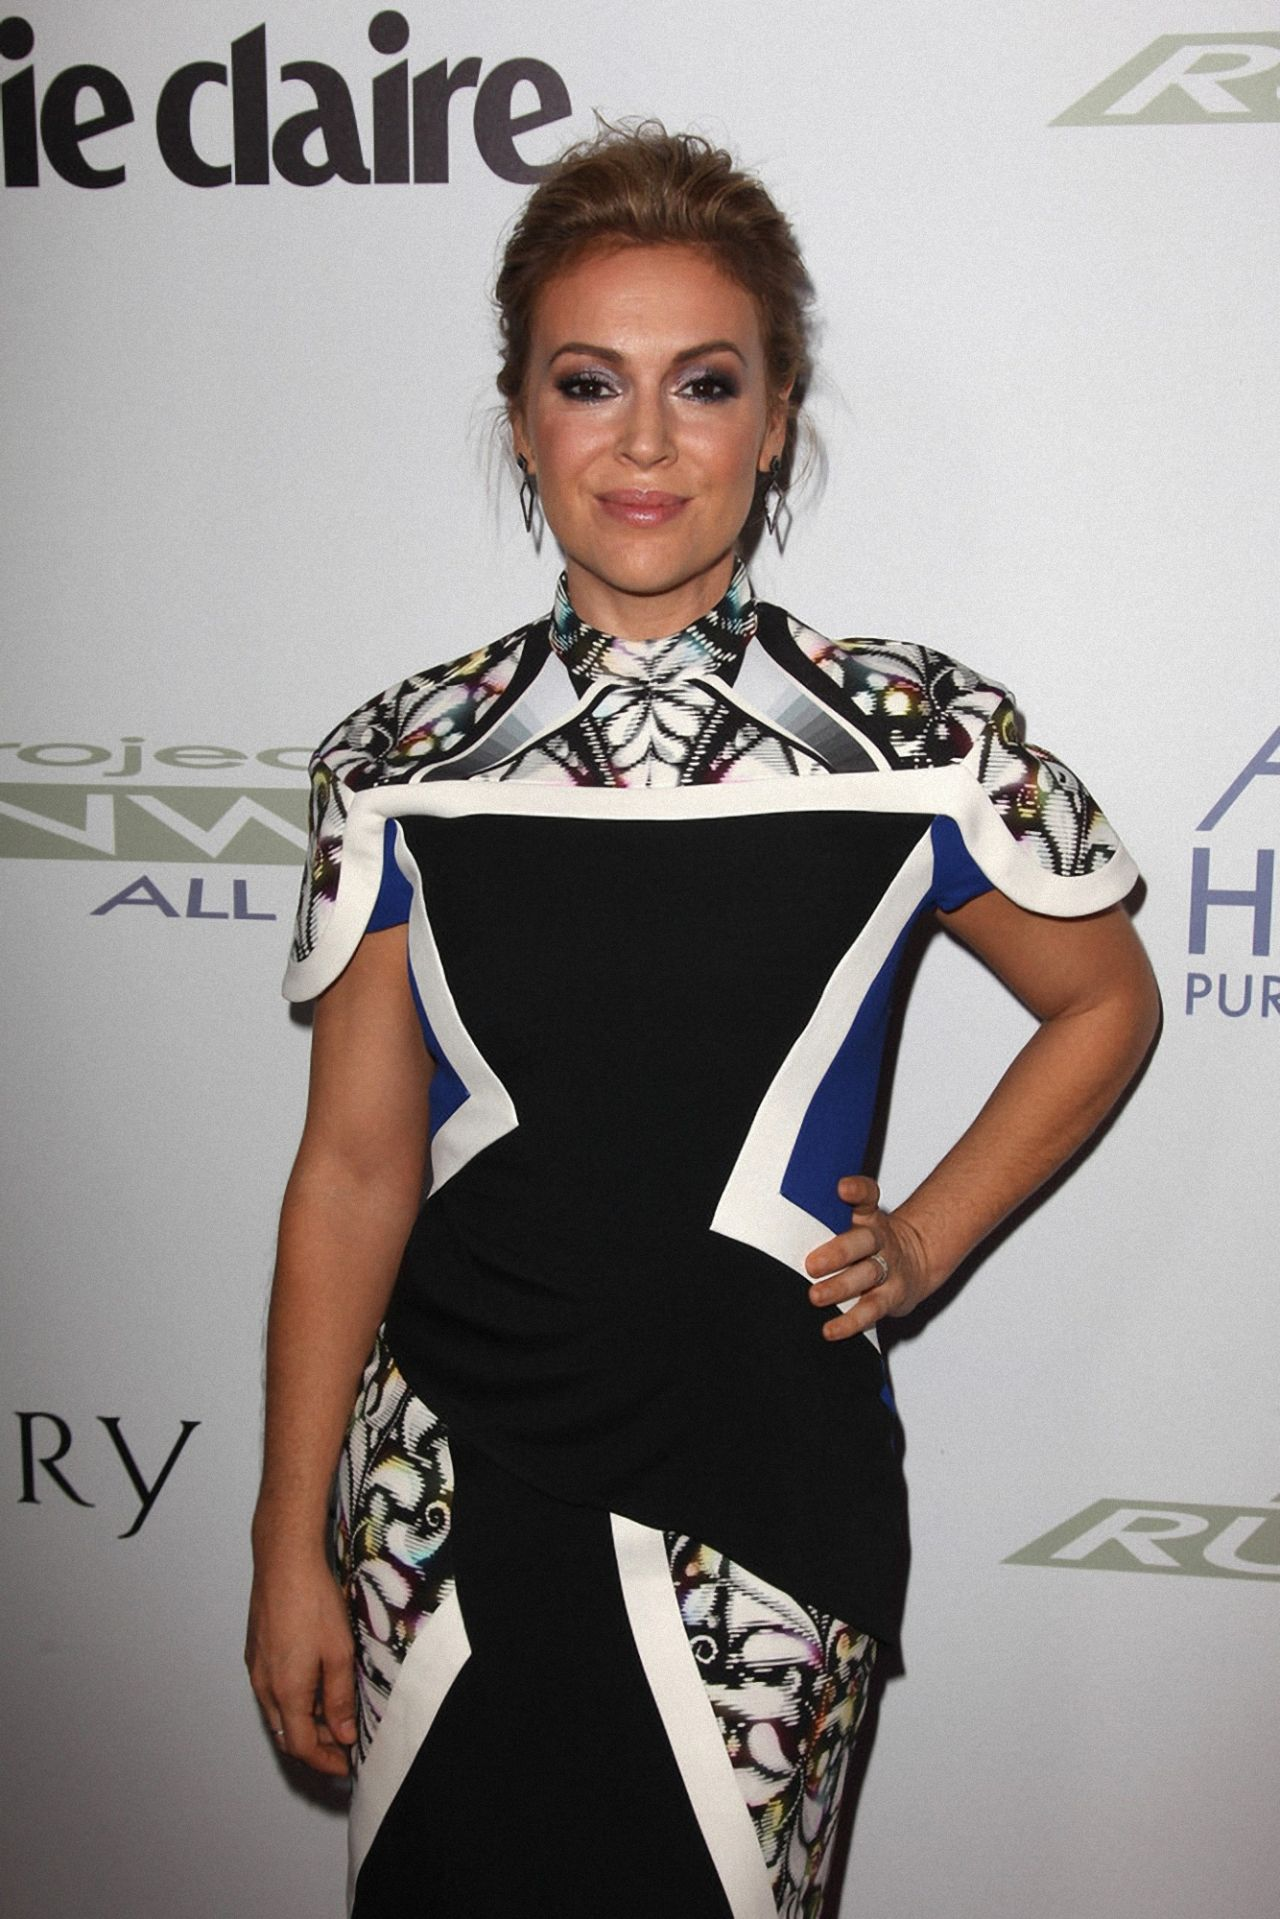 Project Runway All Stars Premiere Party: HOST Alyssa Milano dishes on